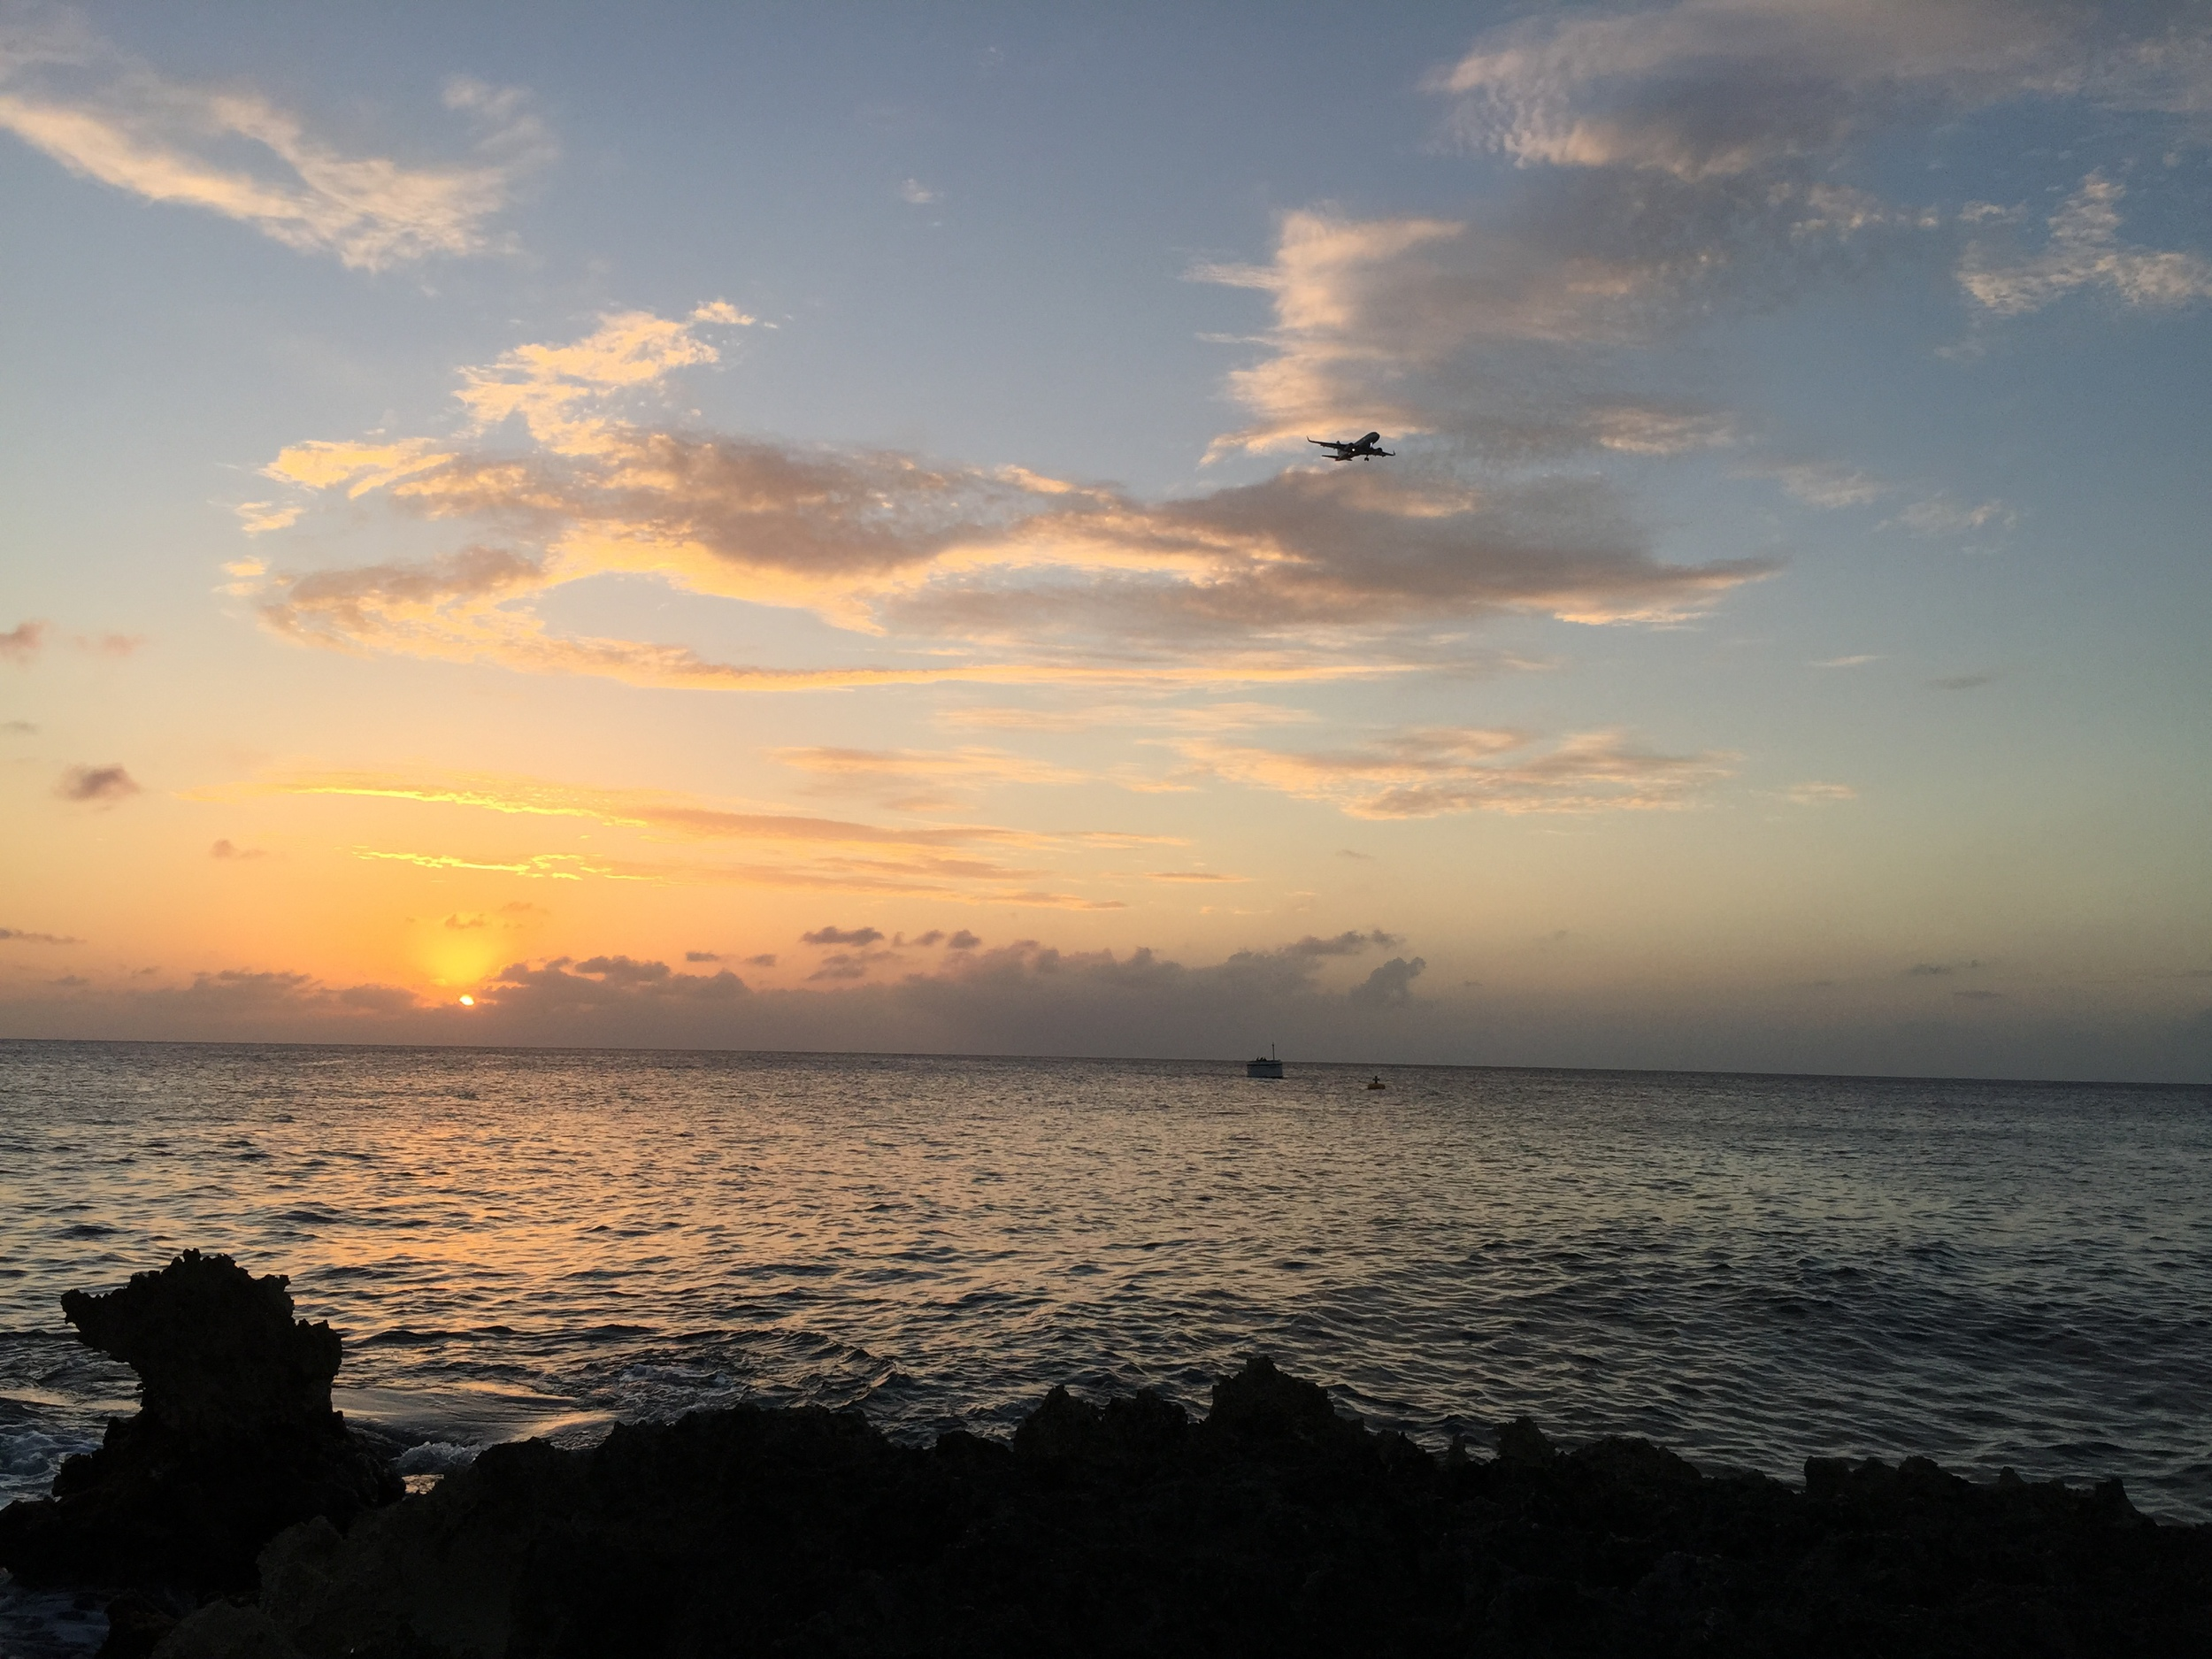 A flight comes in to land on Grand Cayman at sunset